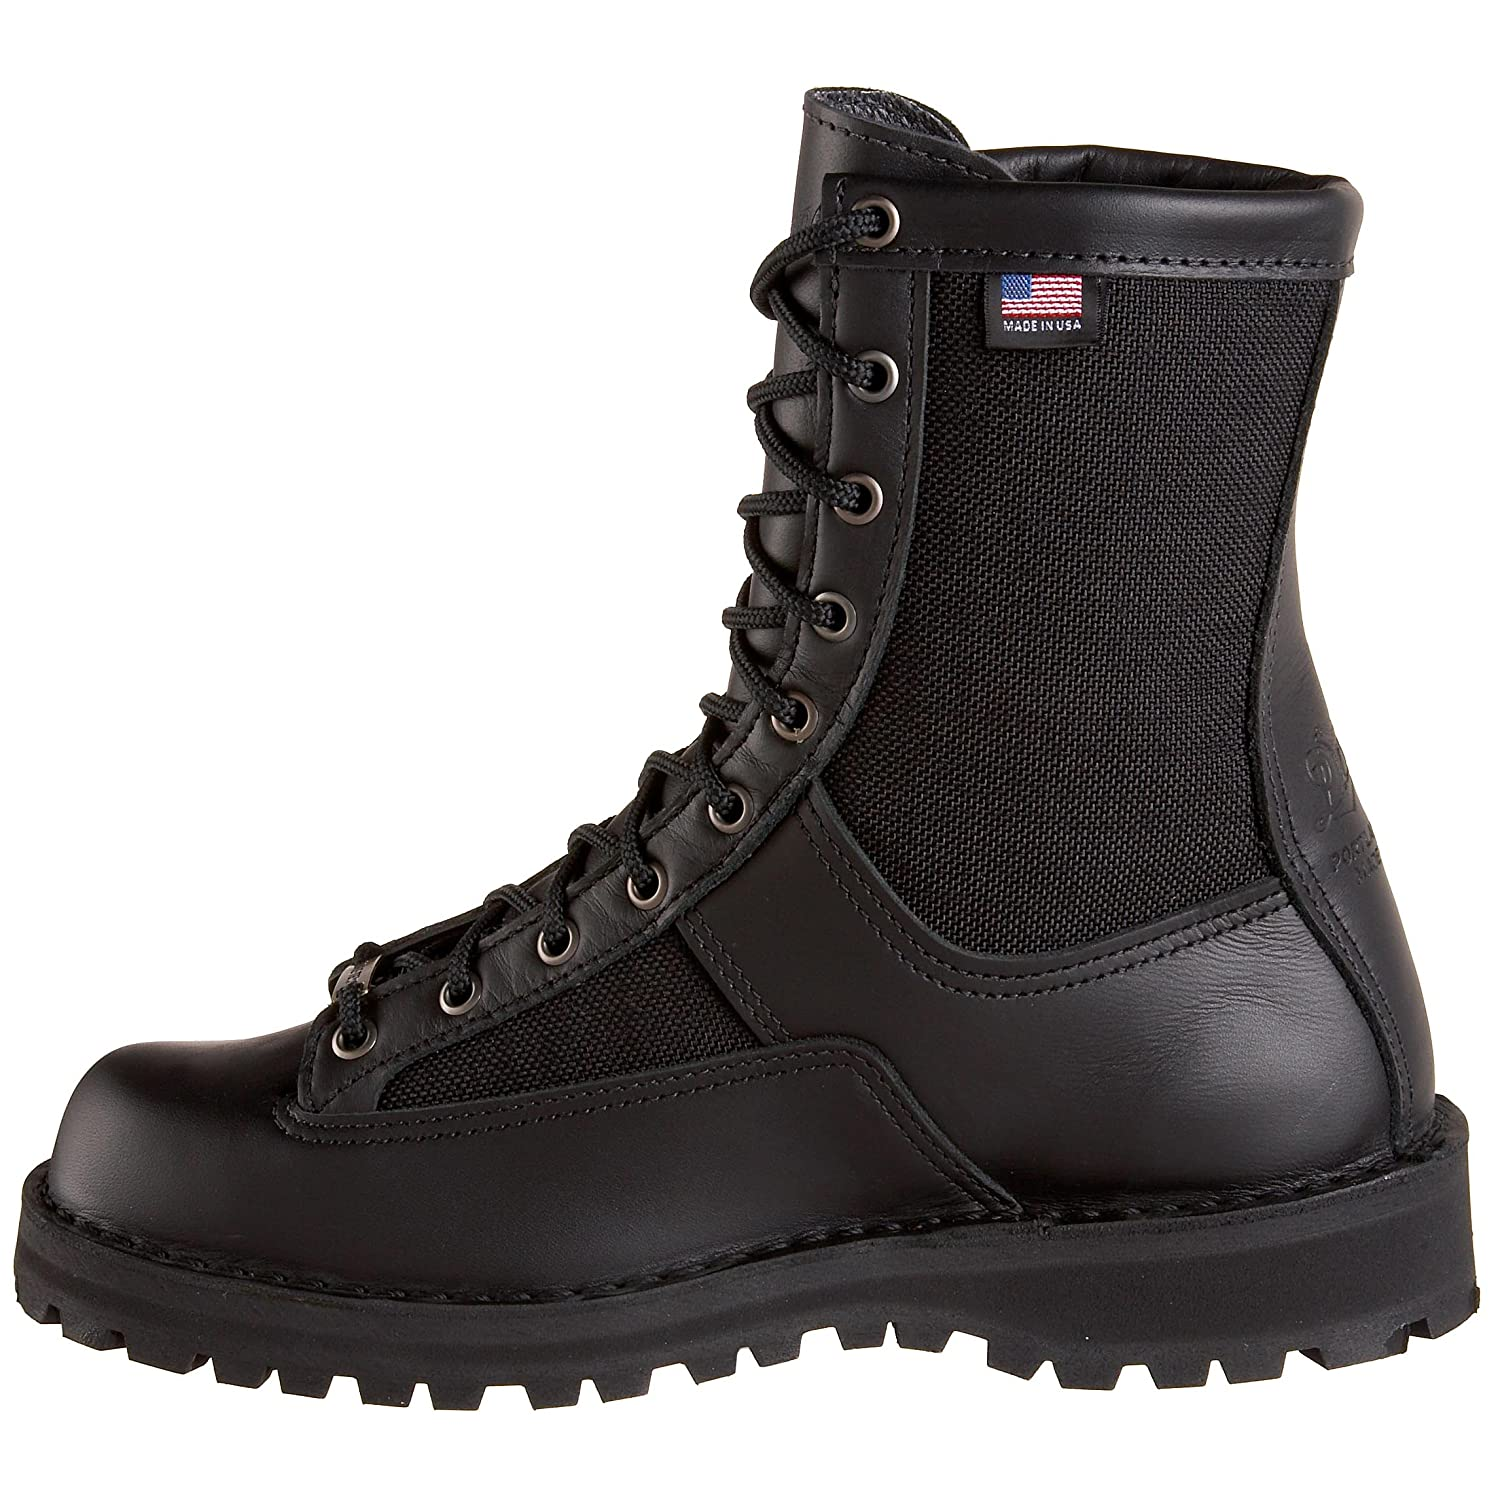 Danner Women's Acadia W Uniform Boot 6.5 B000O2UCLG 6.5 Boot M US|Black 015be3